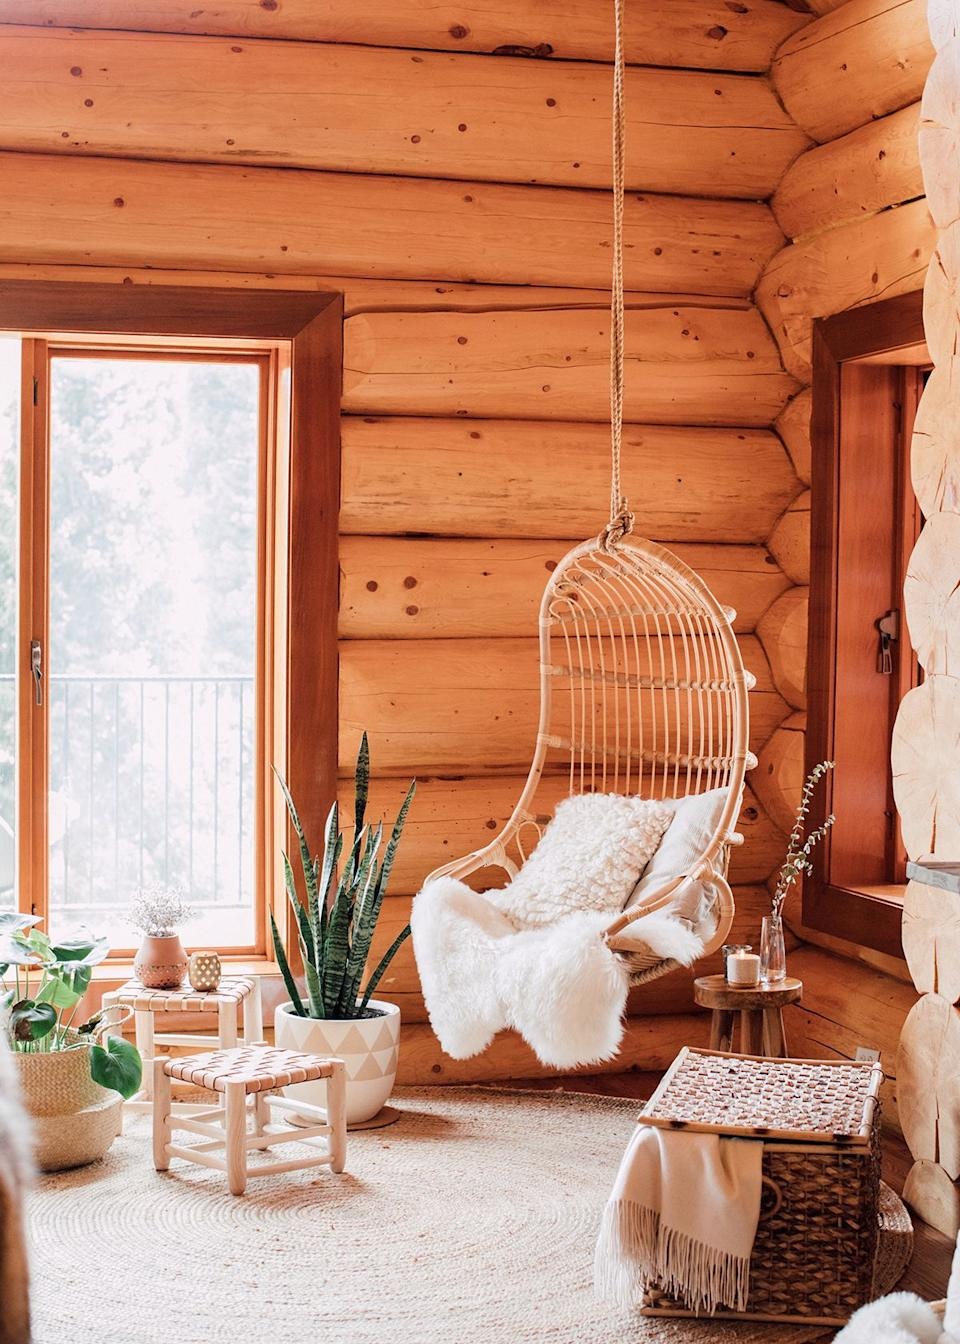 """This cozy corner is just one of the many spaces where every detail is, in fact, in its rightful, styled place. """"When looking at the space in detail, it felt only natural to offset the dark, heavy wood grains with something fresher and lighter to really encourage the play on natural light,"""" Kula explains. The textured sheepskin rugs, the woven stools, the hanging rattan chair, and the greenery playfully contrast yet perfectly complement the log wall interior of the cabin."""